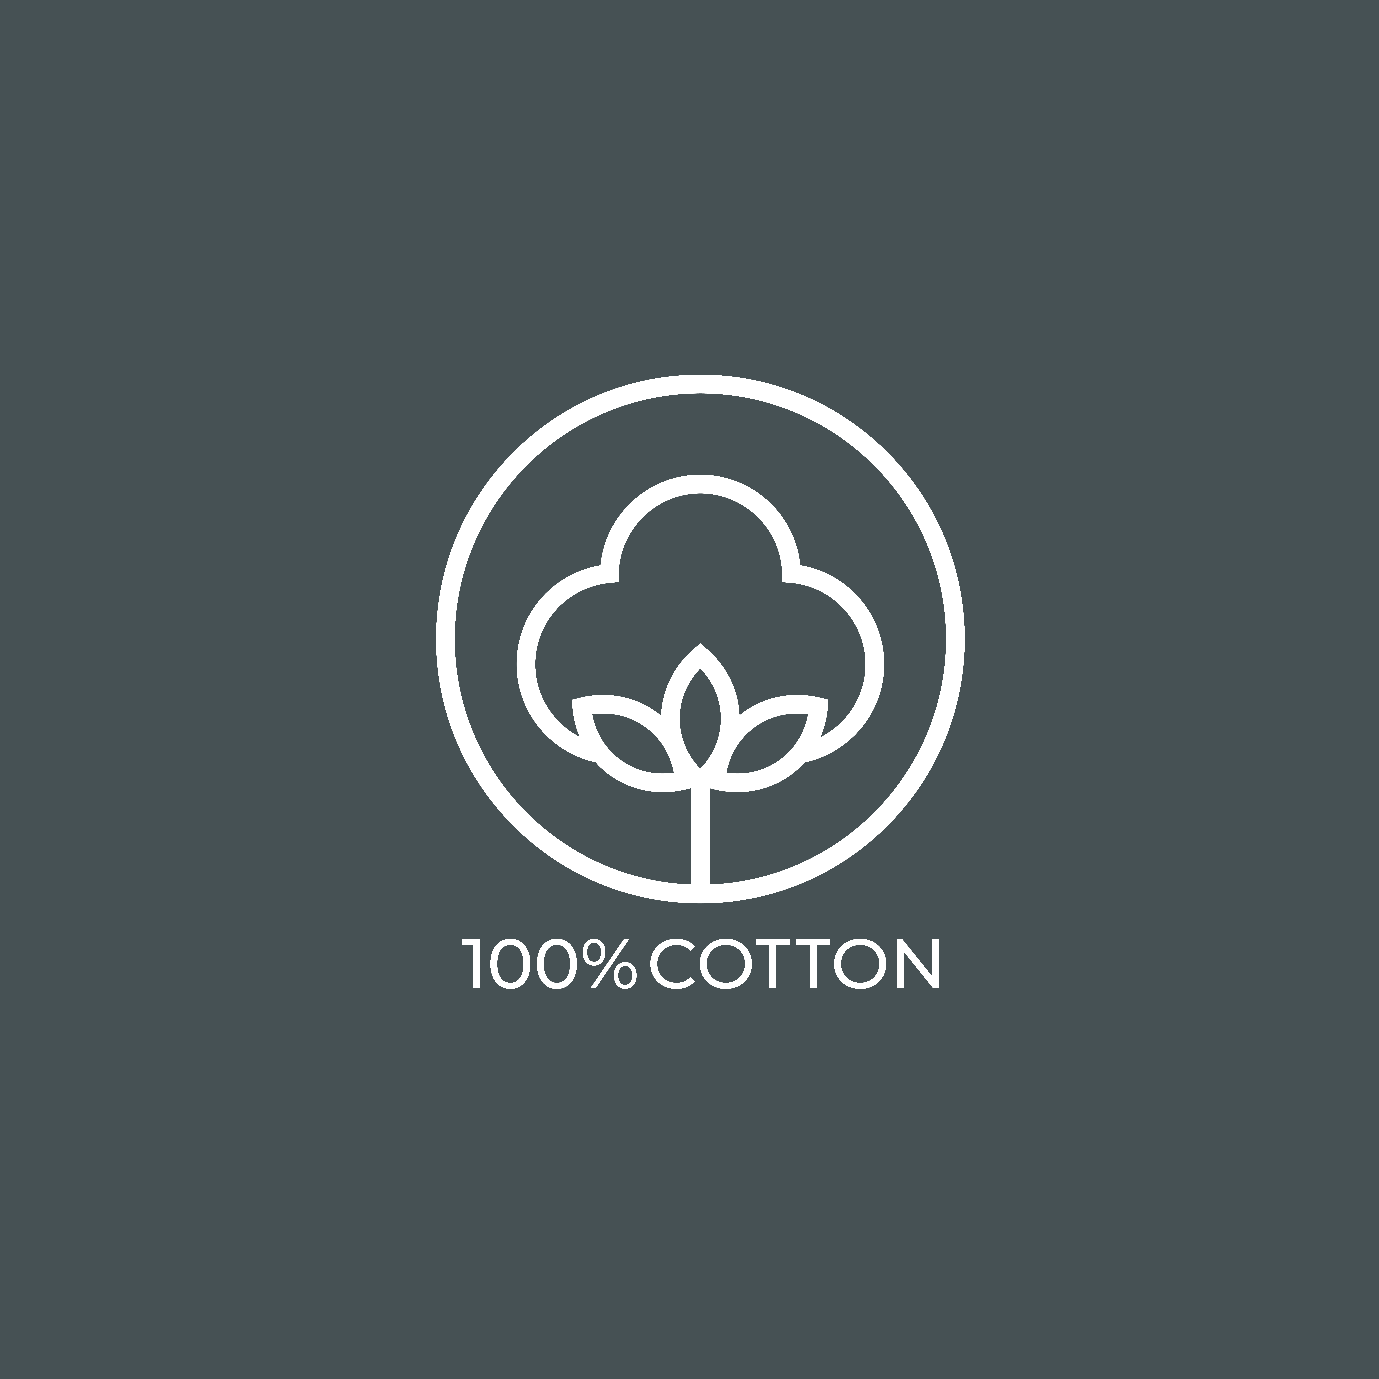 Cotton budding for a potential breakout opportunity